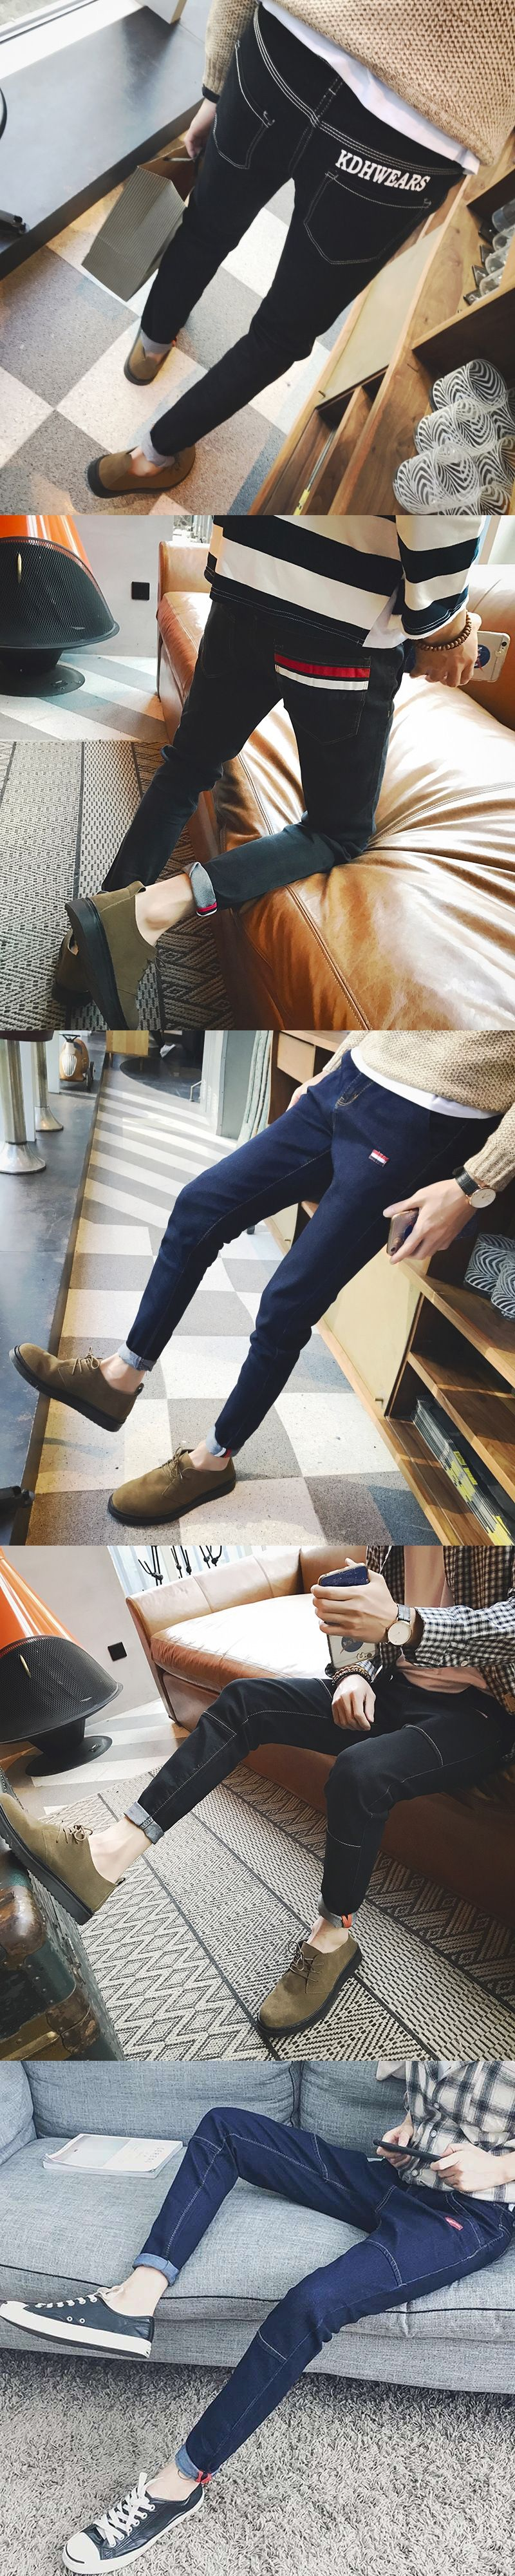 Fashion 2017 Spring Autumn Students Hip Hop City Street Stripe jeans Man young Men s Casual Ankle